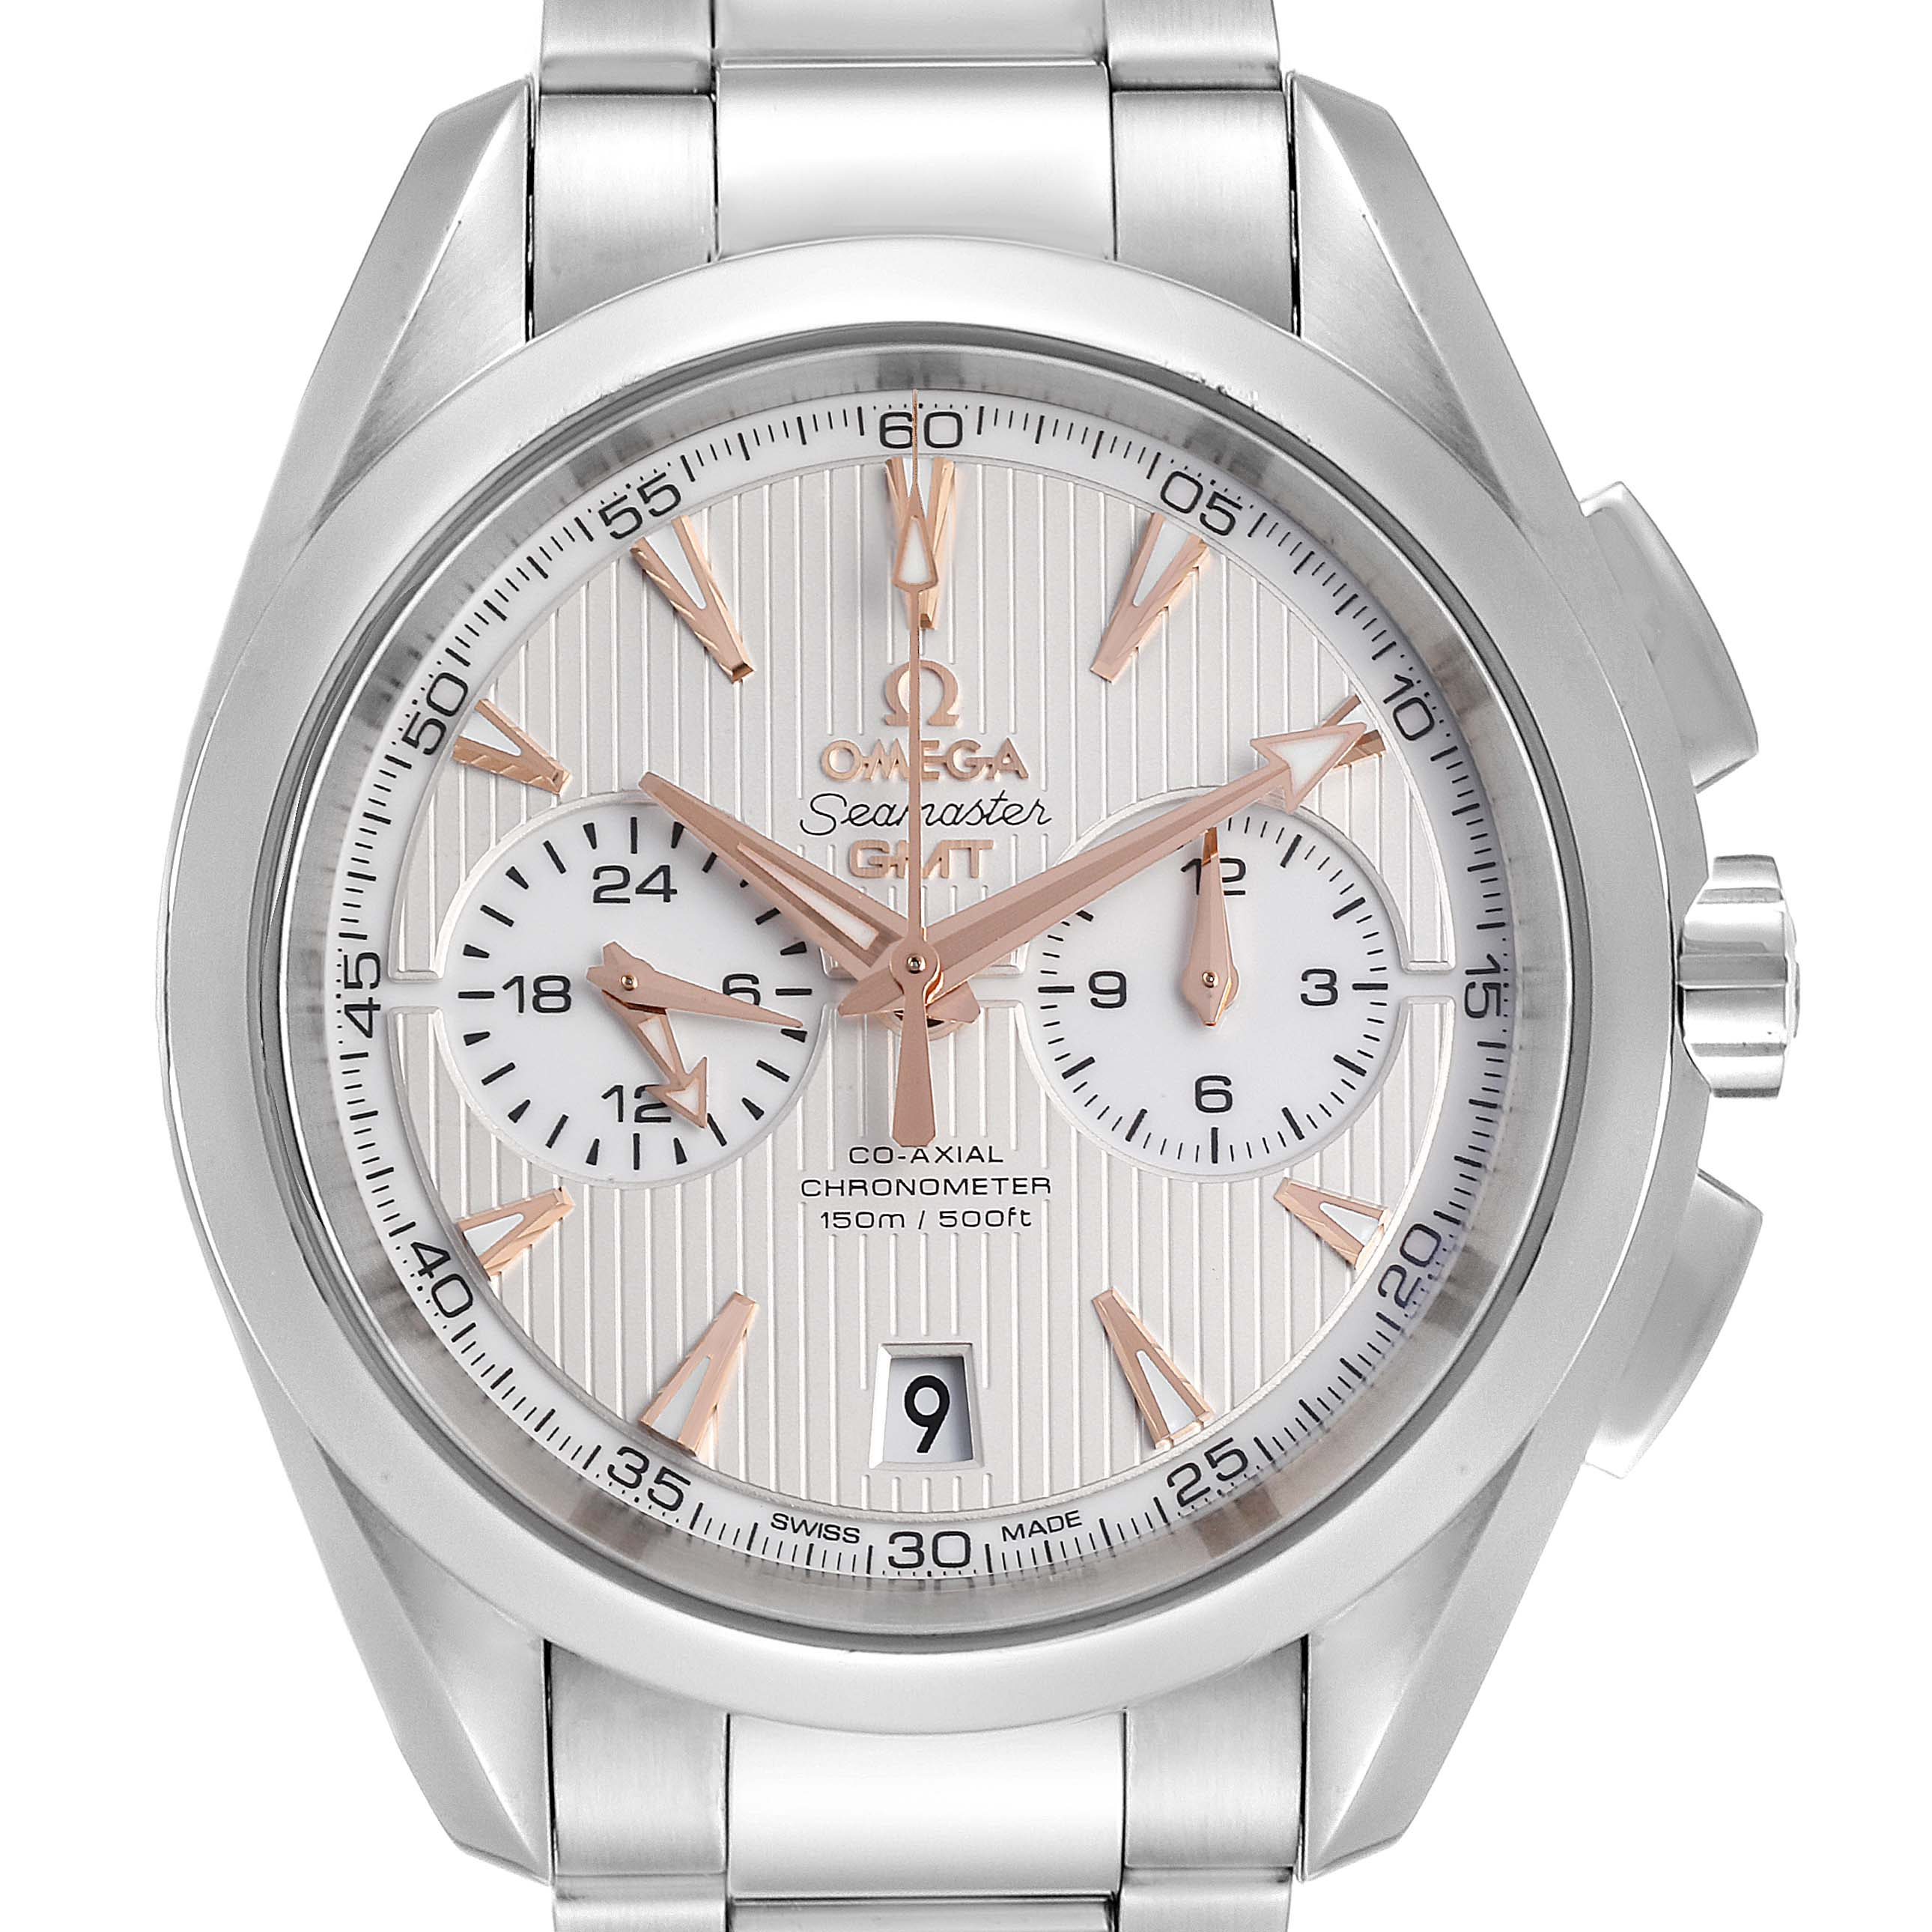 Photo of Omega Seamaster Aqua Terra GMT Chronograph Mens Watch 231.10.43.52.03.001 PARTIAL PAYMENT